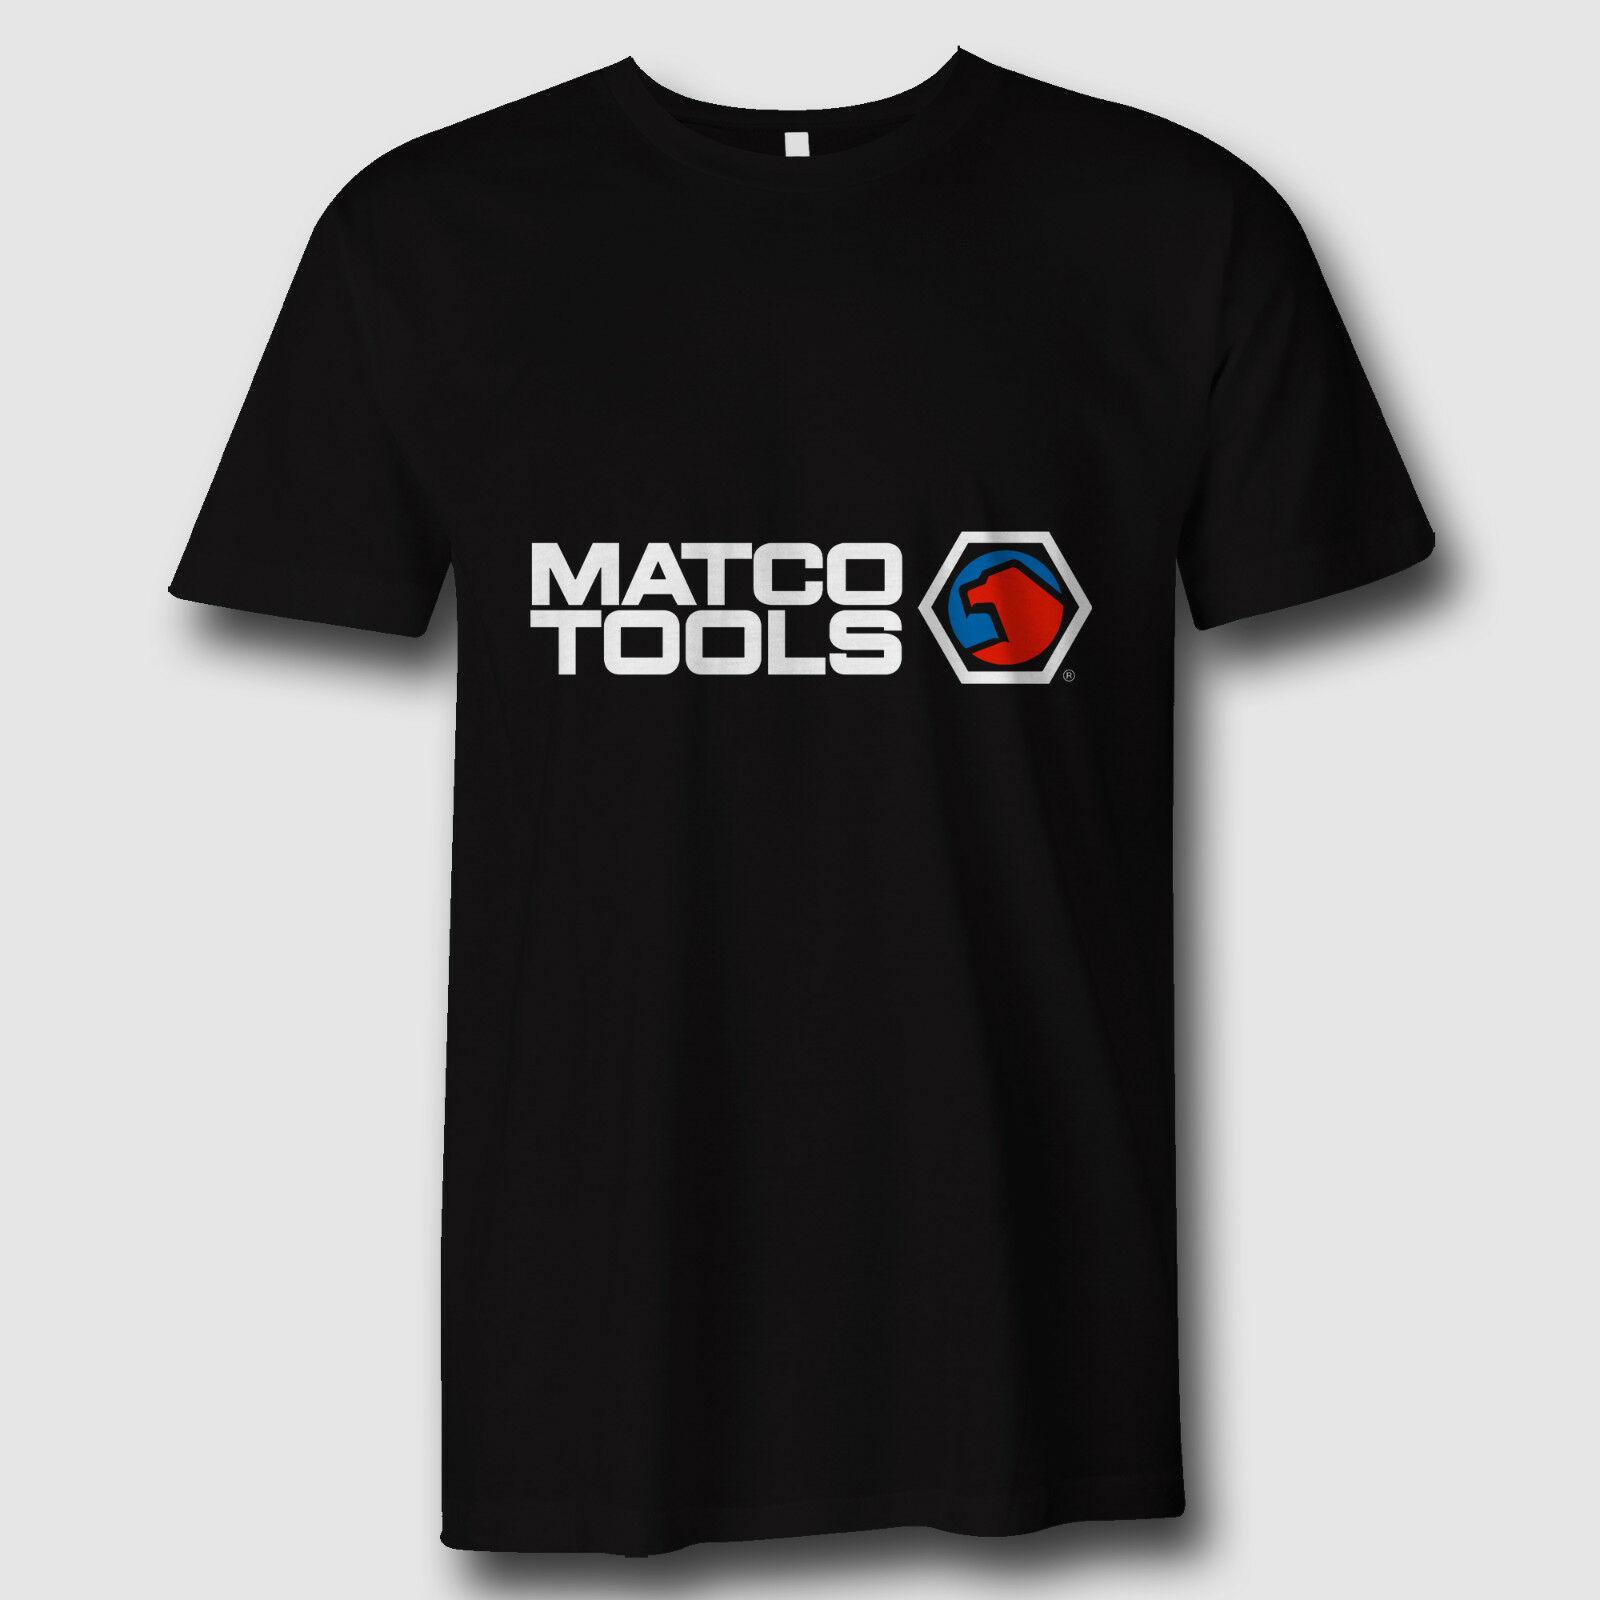 MATCO TOOLS box ratchet wrench socket set screwdriv Tee Logo T ShirtFunny  free shipping Unisex Casual top